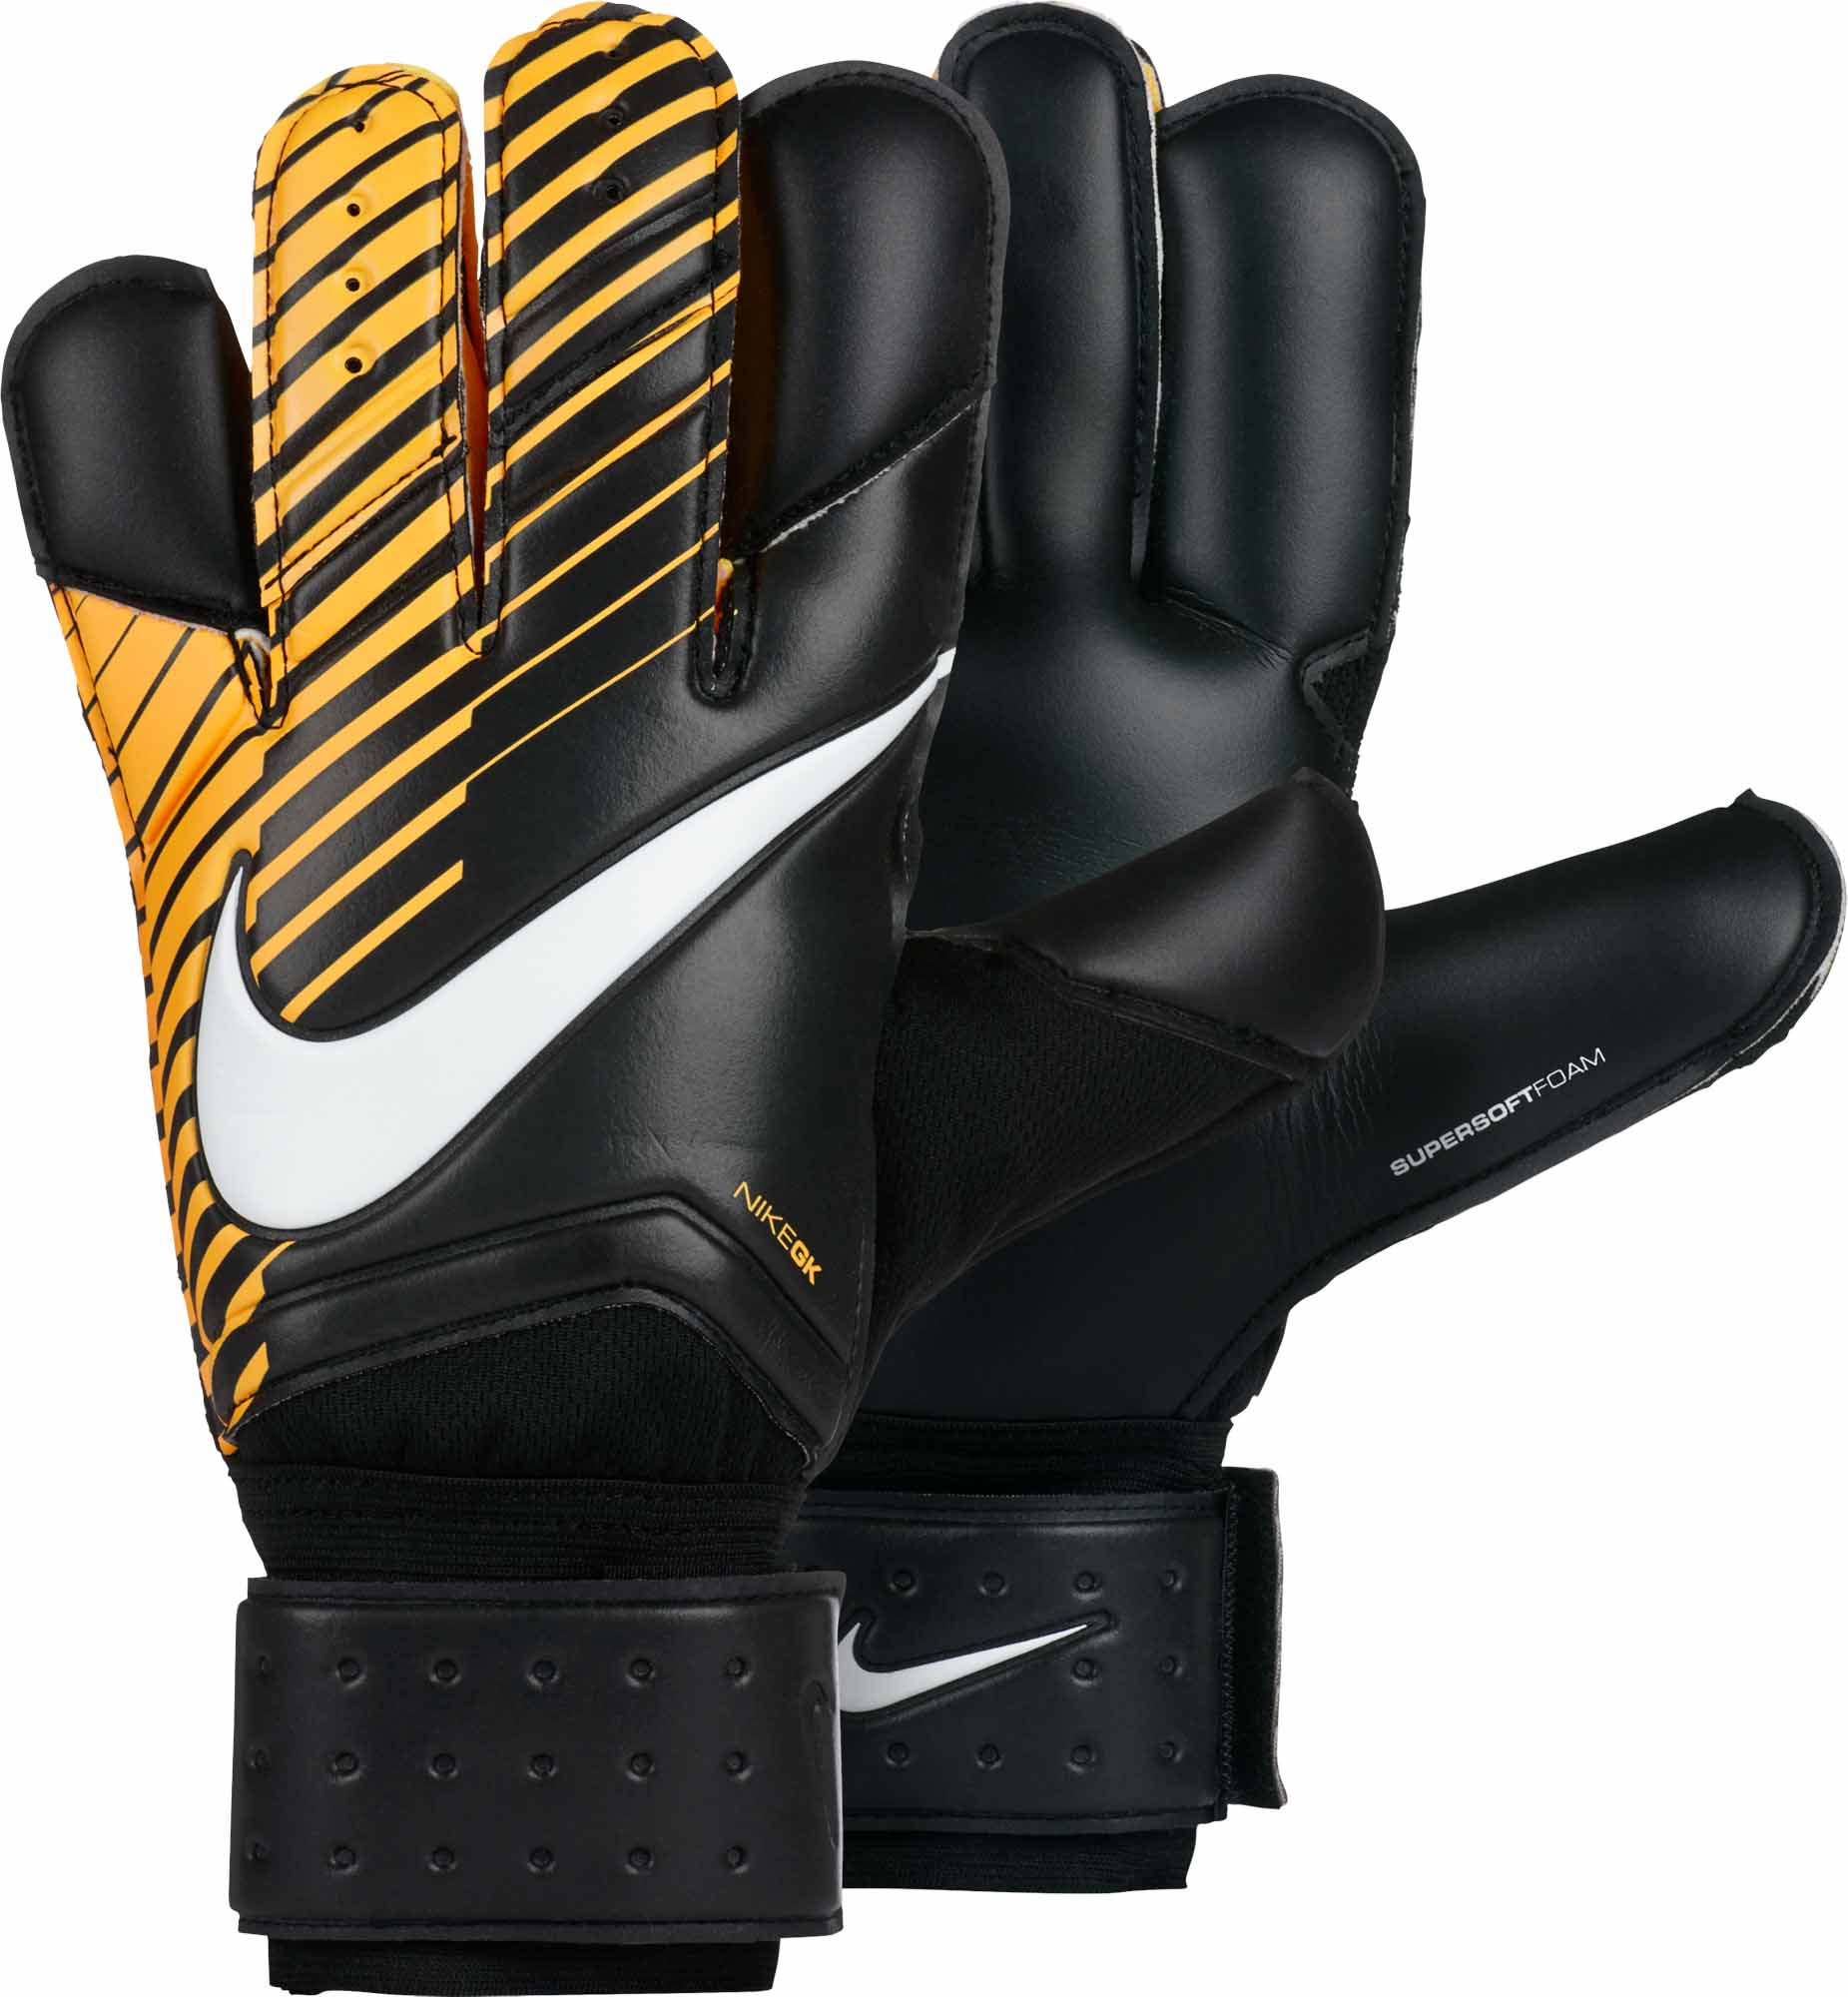 Nike Soccer Gloves: Nike Grip 3 Goalkeeper Gloves